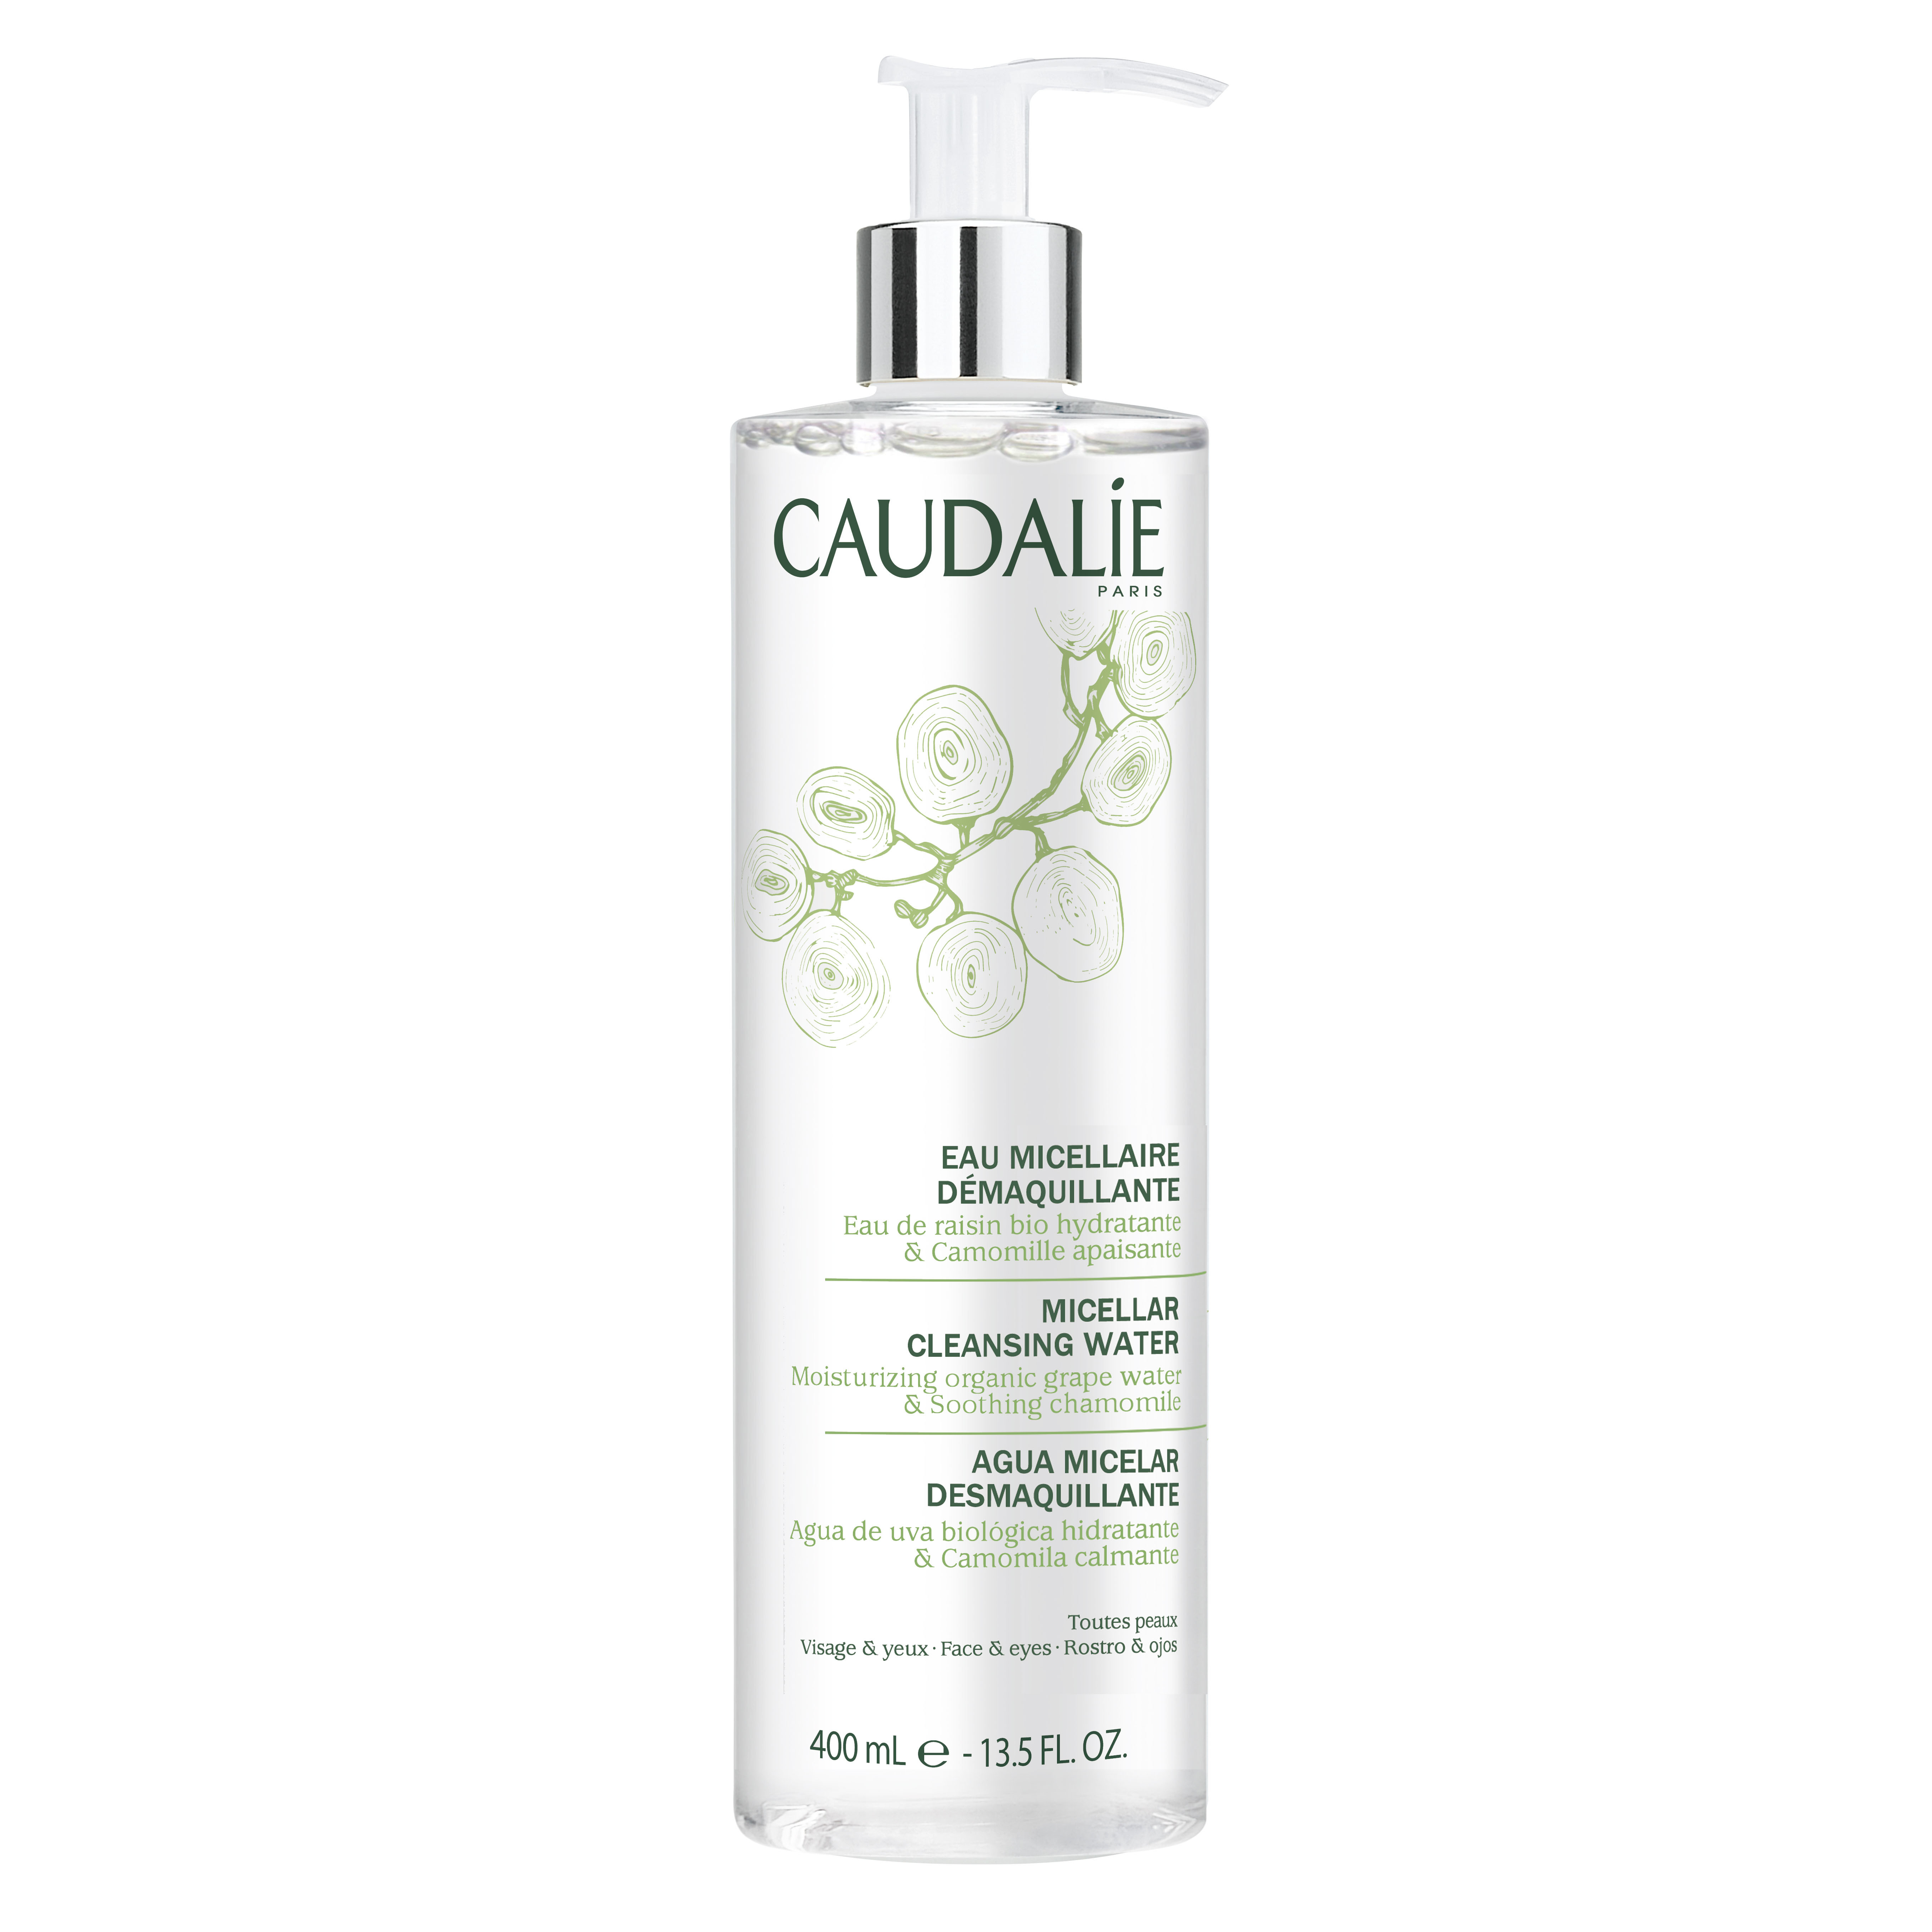 153 3522930001539 Caudalie Micellar Water 400ml